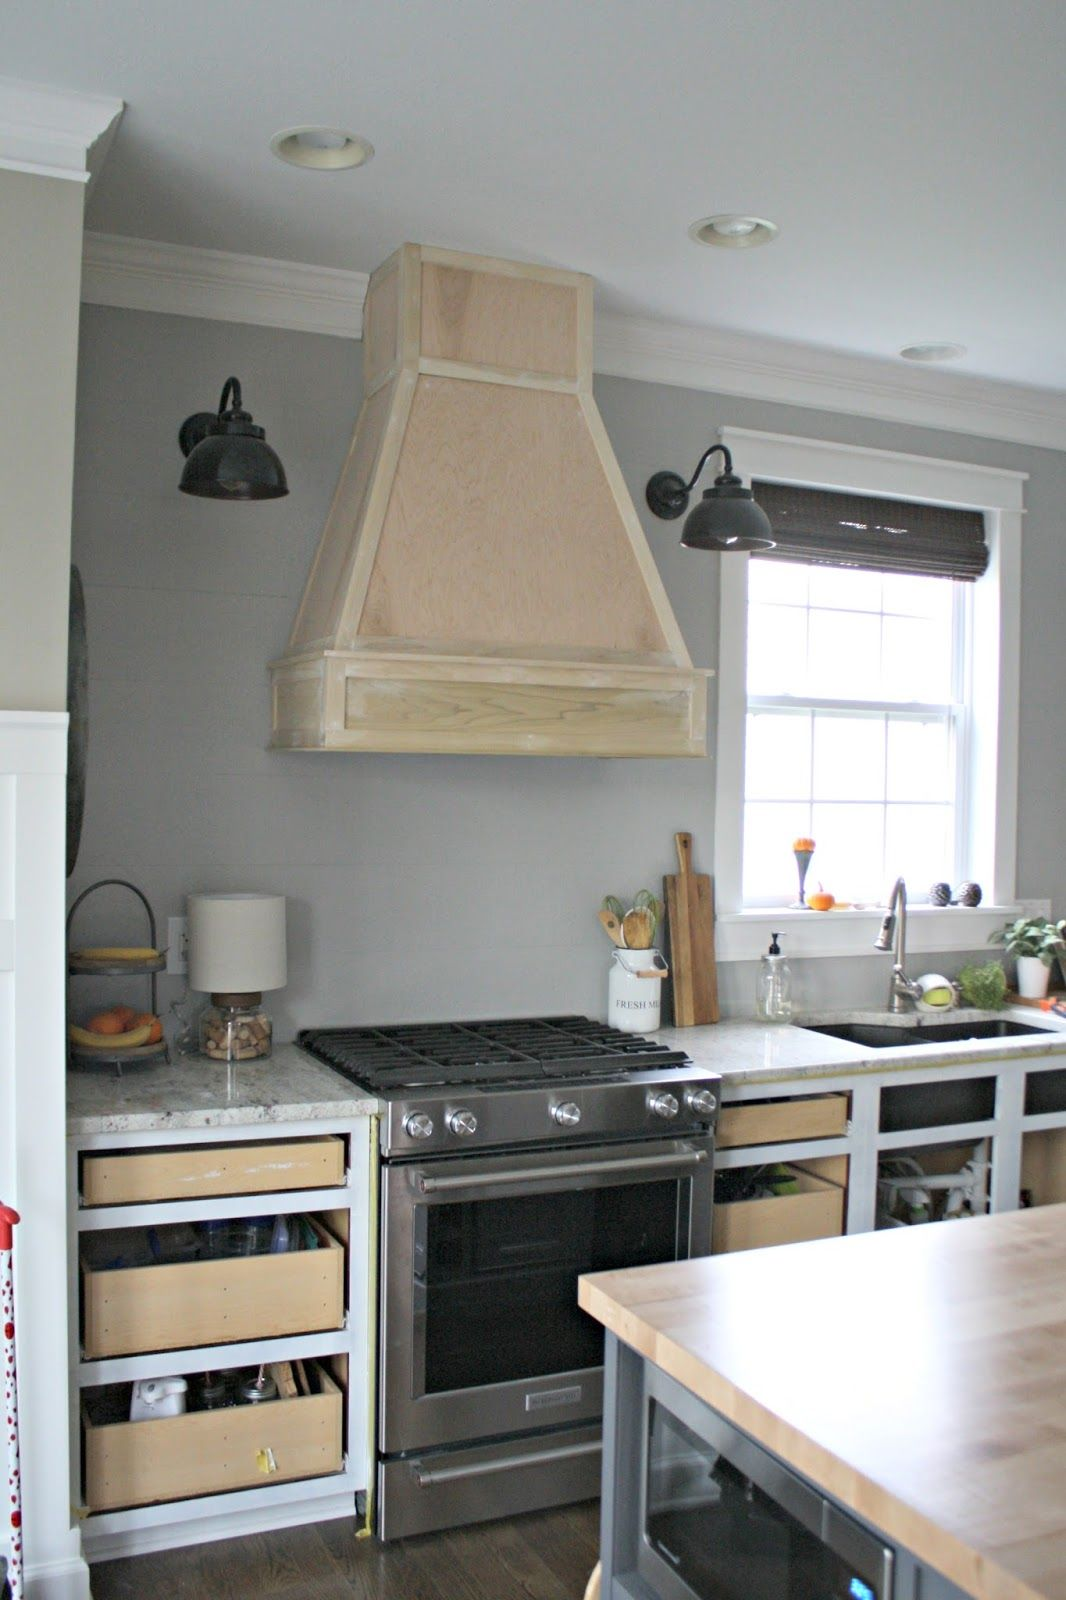 Kitchen Cabinet Range Hood Design A Diy Ish Wood Vent Hood Where Momma Cooks Kitchen